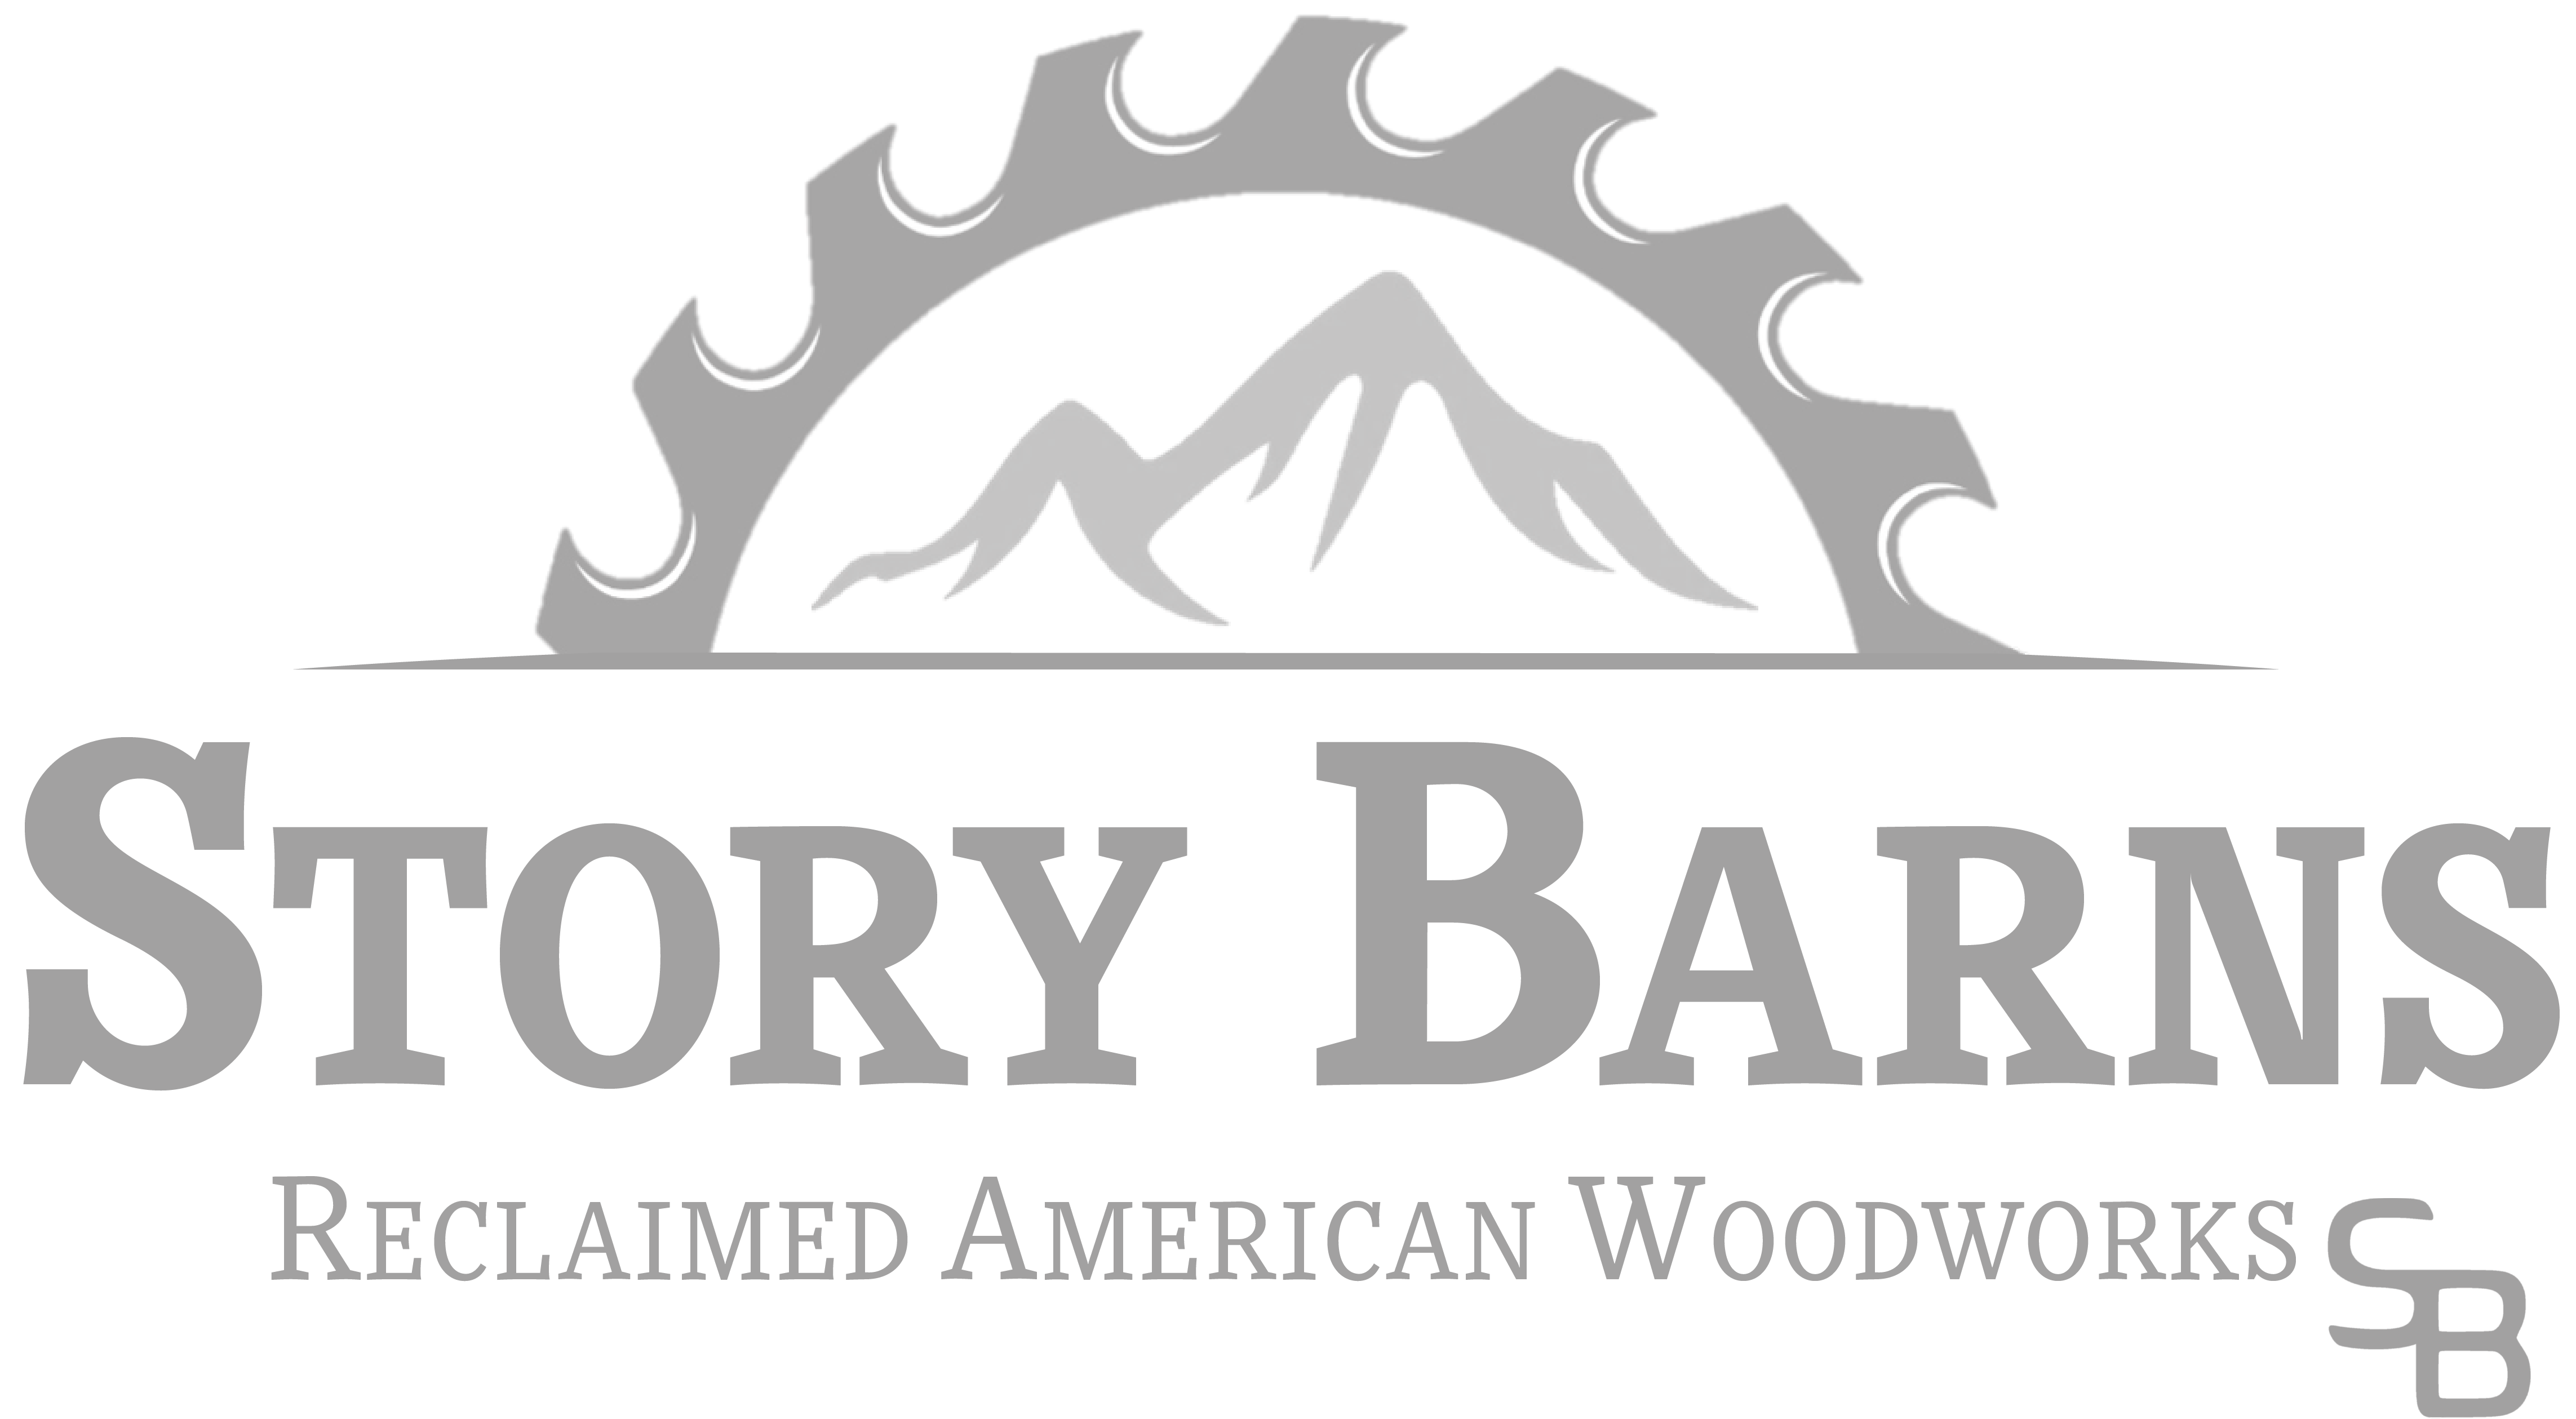 Story Barns – Reclaimed American Woodworks